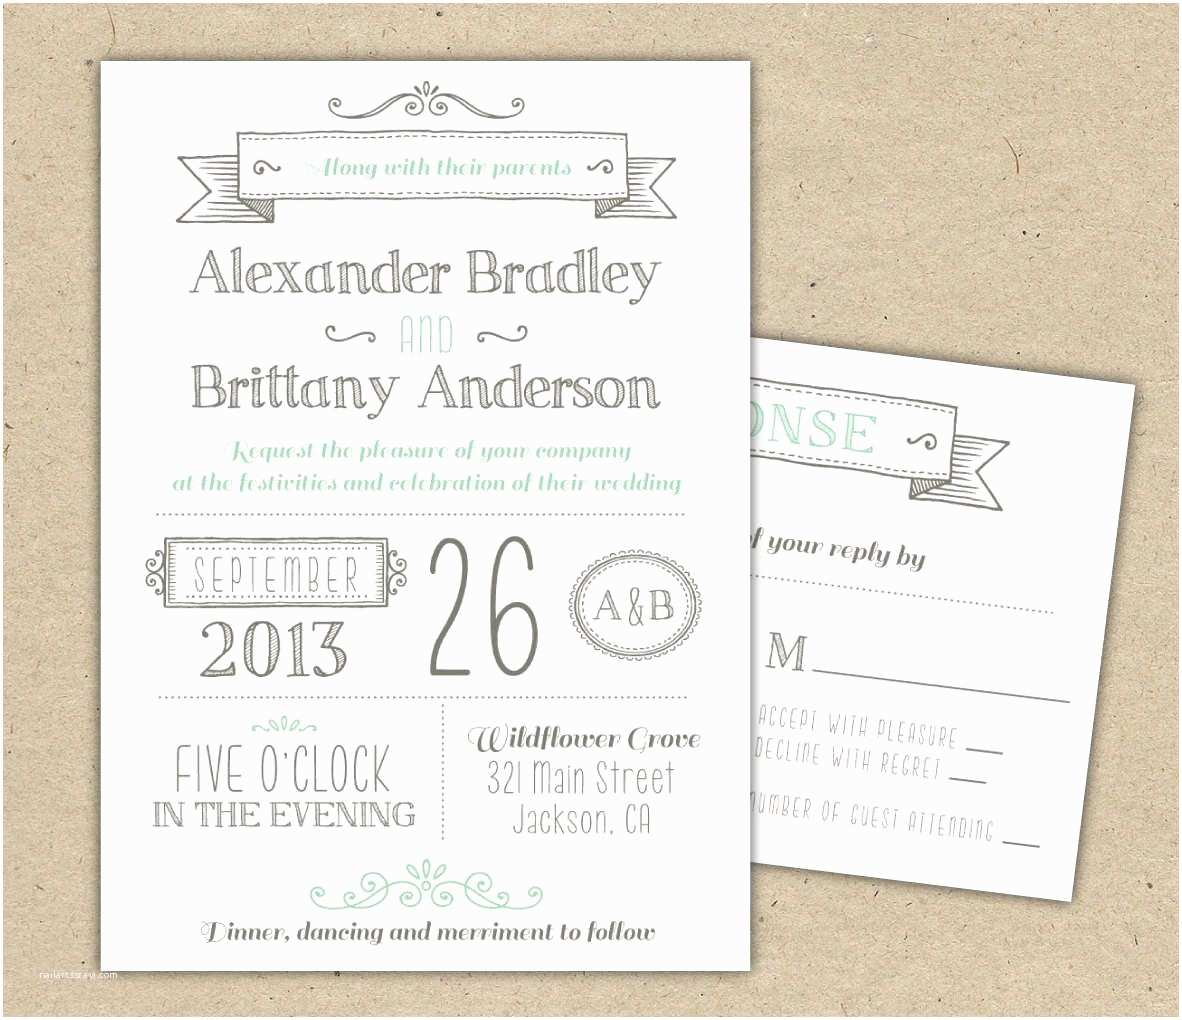 Wedding Invitations to Print at Home for Free Wedding Invitations Template Free Download